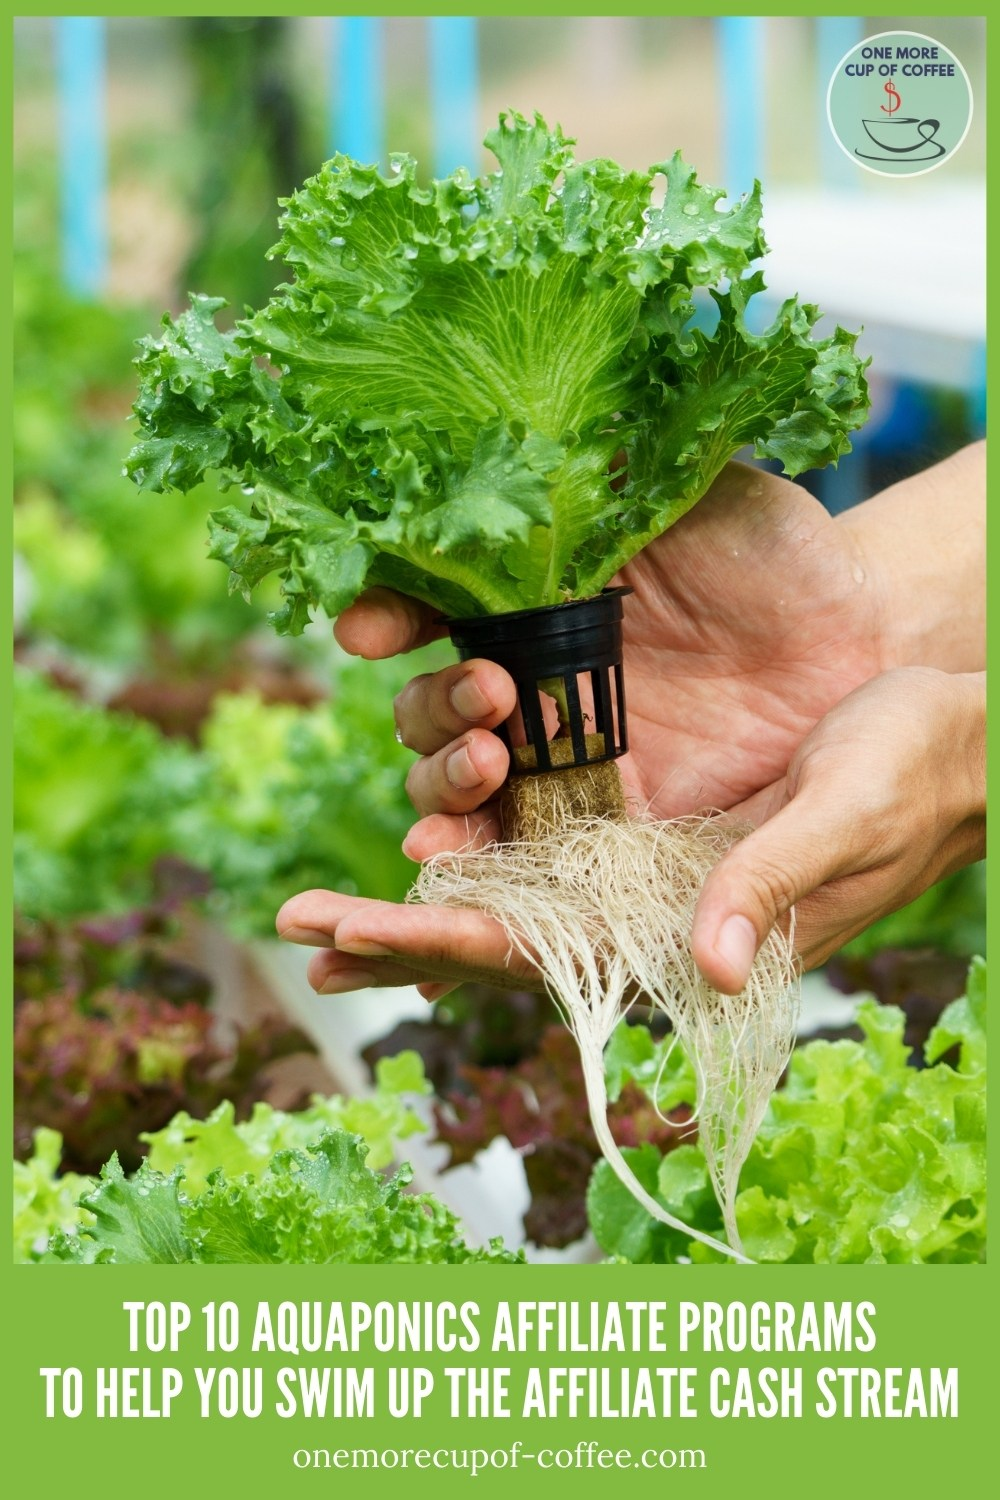 """closeup image of a green vegetable in aquaponics, with text at the bottom """"Top 10 Aquaponics Affiliate Programs To Help You Swim Up The Affiliate Cash Stream'"""